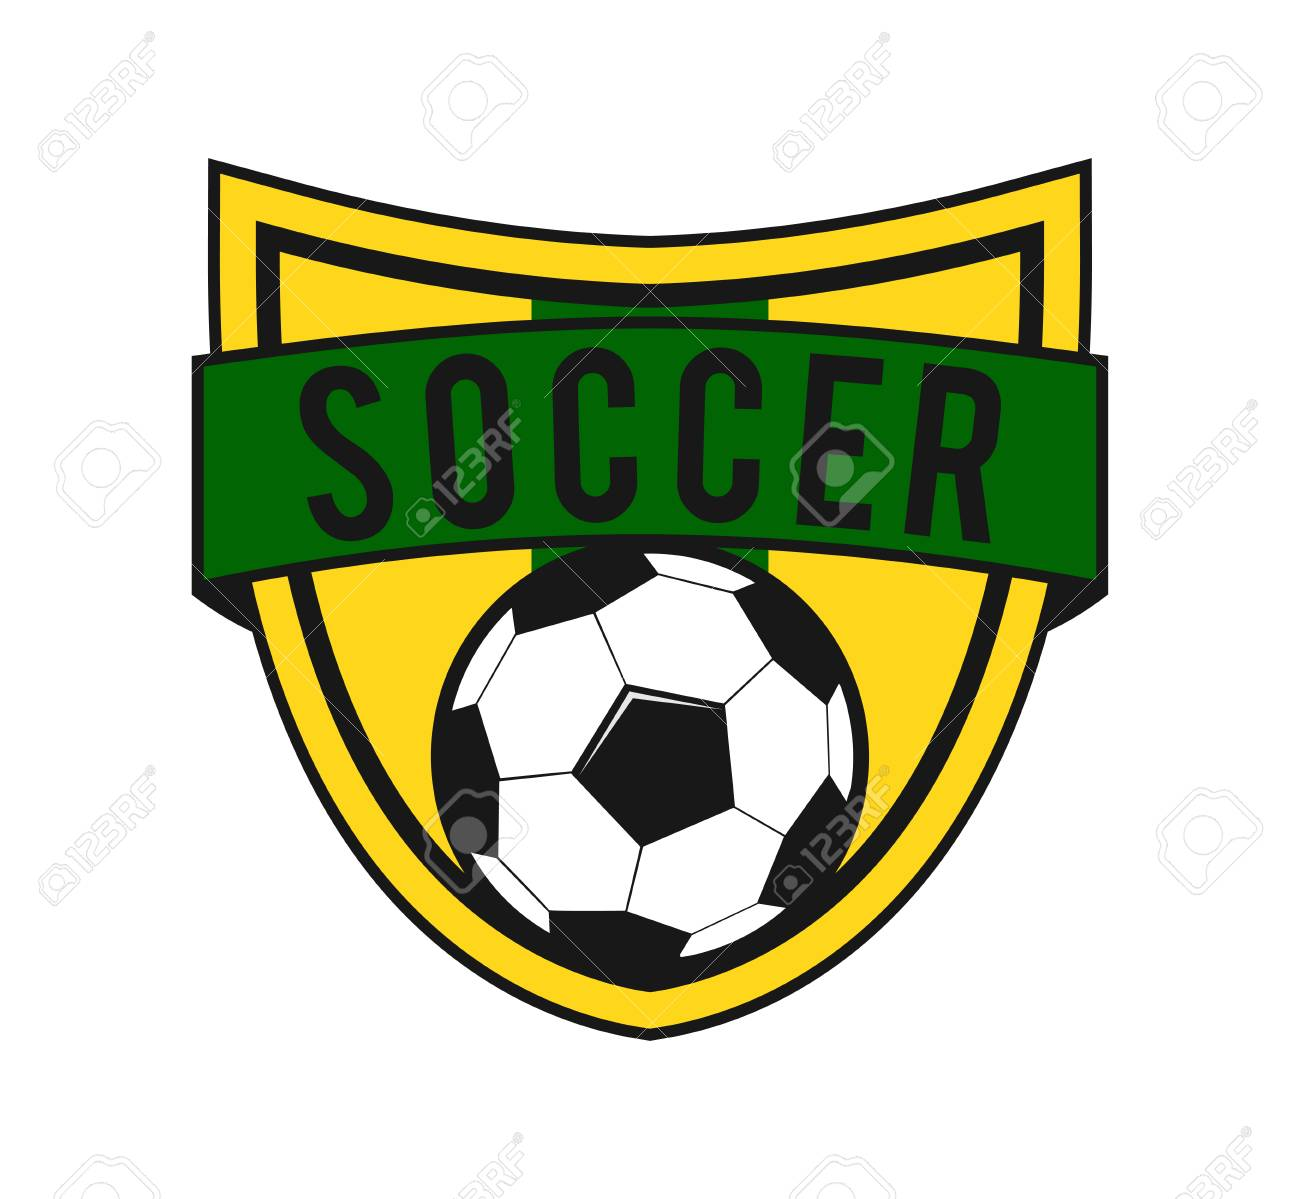 soccer football crest emblem vector logo design template inspiration